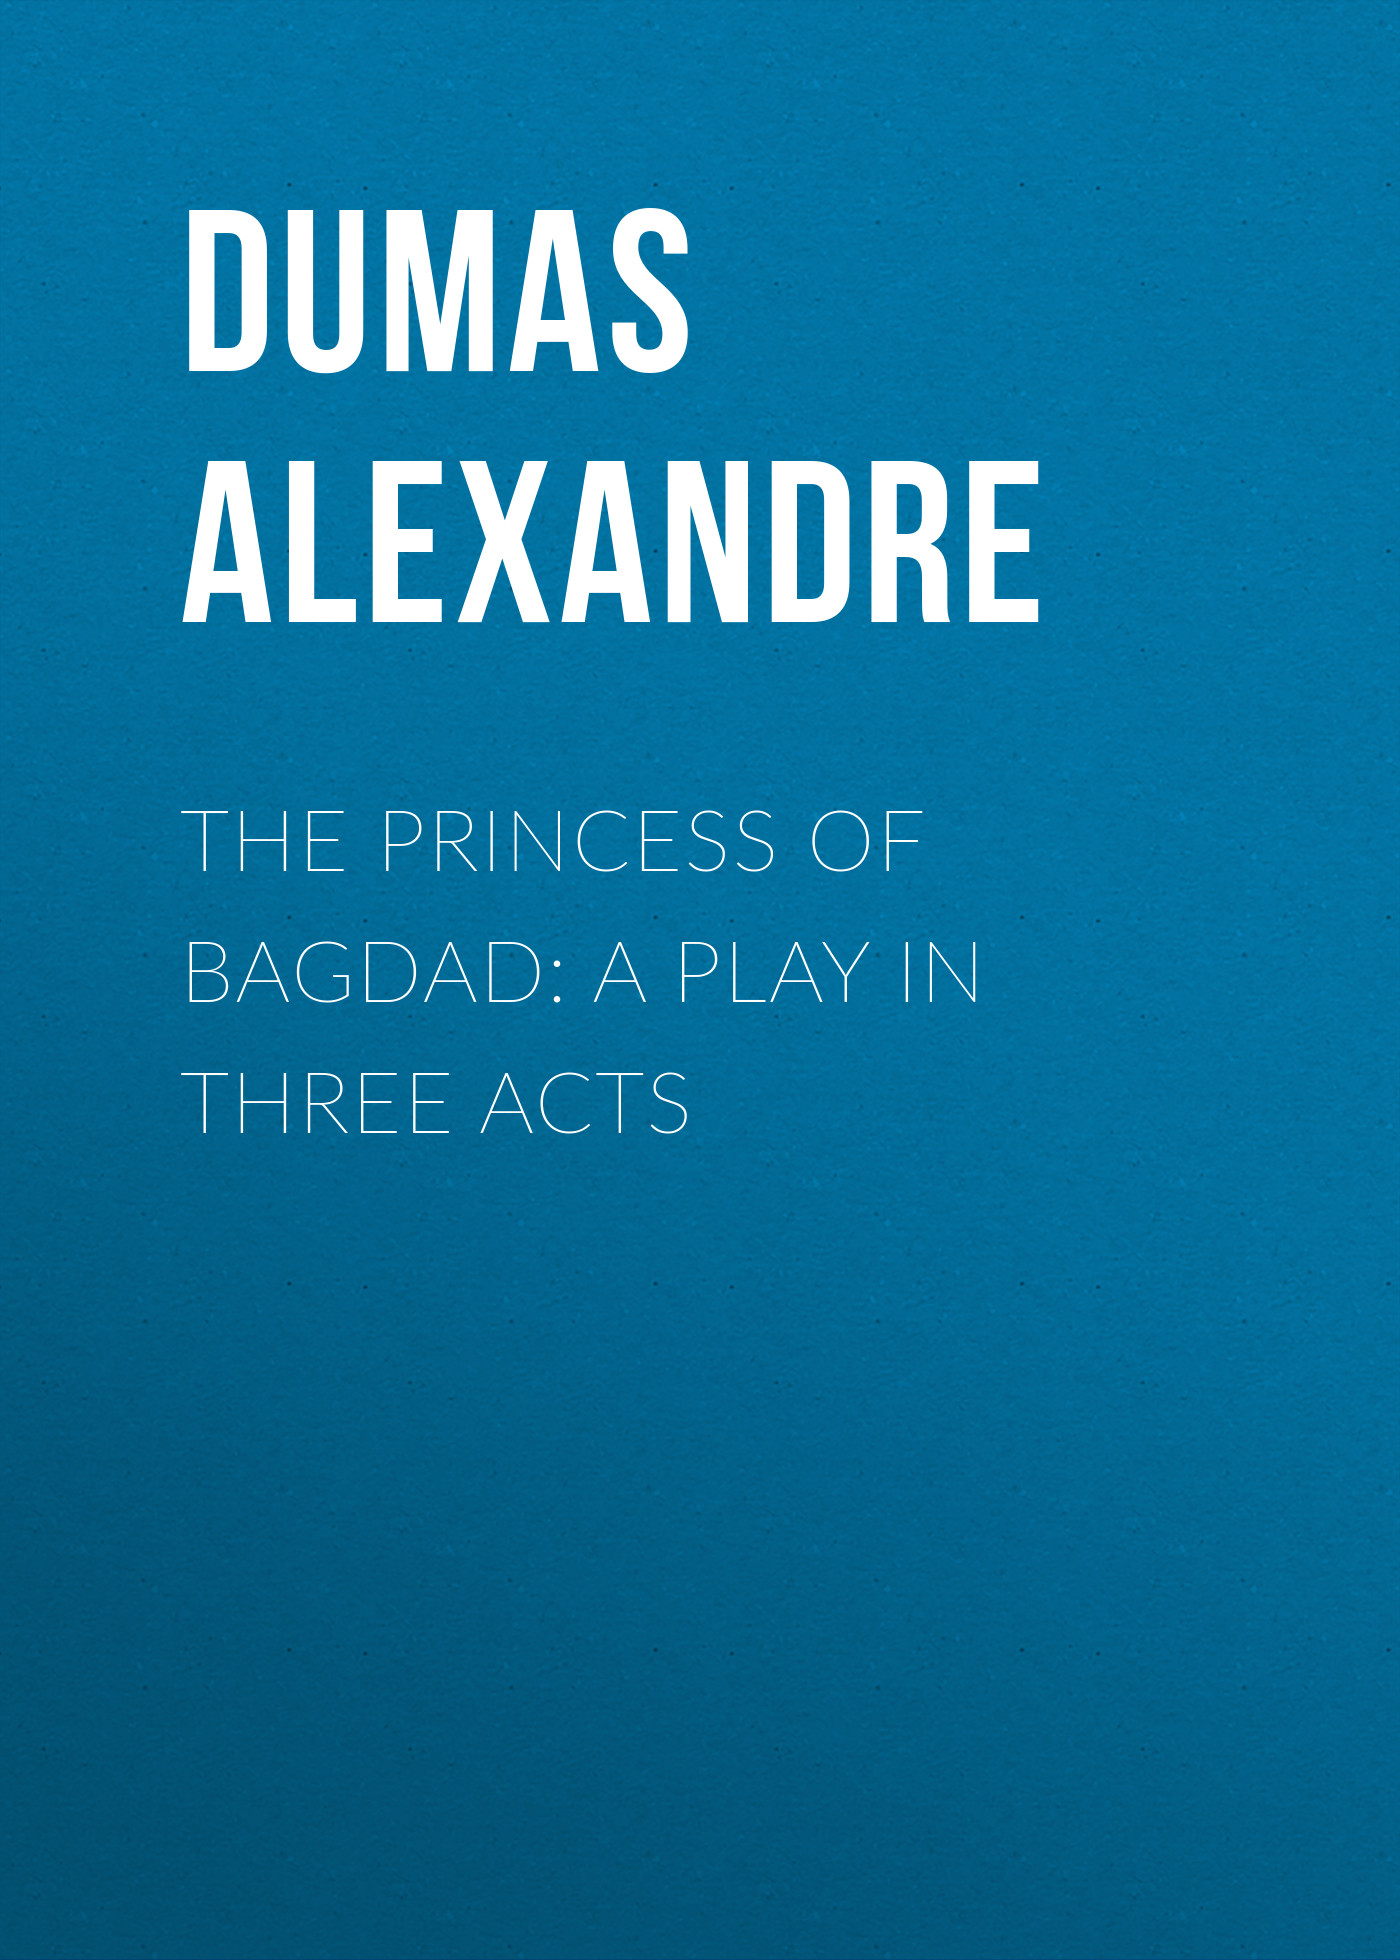 Александр Дюма The Princess of Bagdad: A Play In Three Acts joanna baillie the bride microform a drama in three acts page 4 page 2